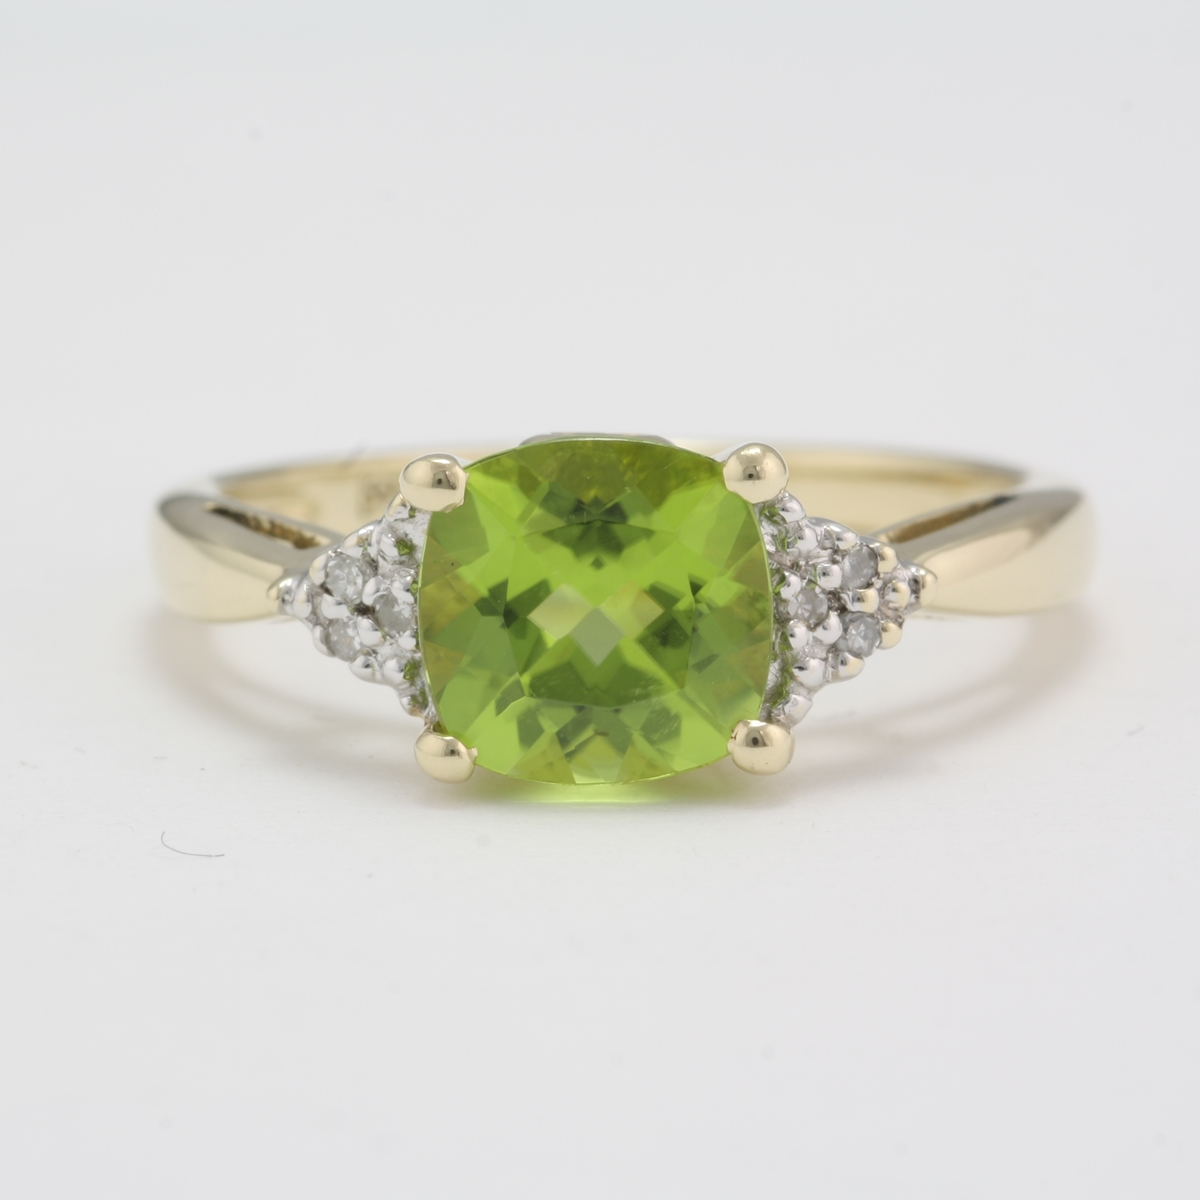 for genuine gem beautiful ring stone natural gemstone ct rings with products lohaspie yellow gold jewelry solid fine side peridot diamond wedding